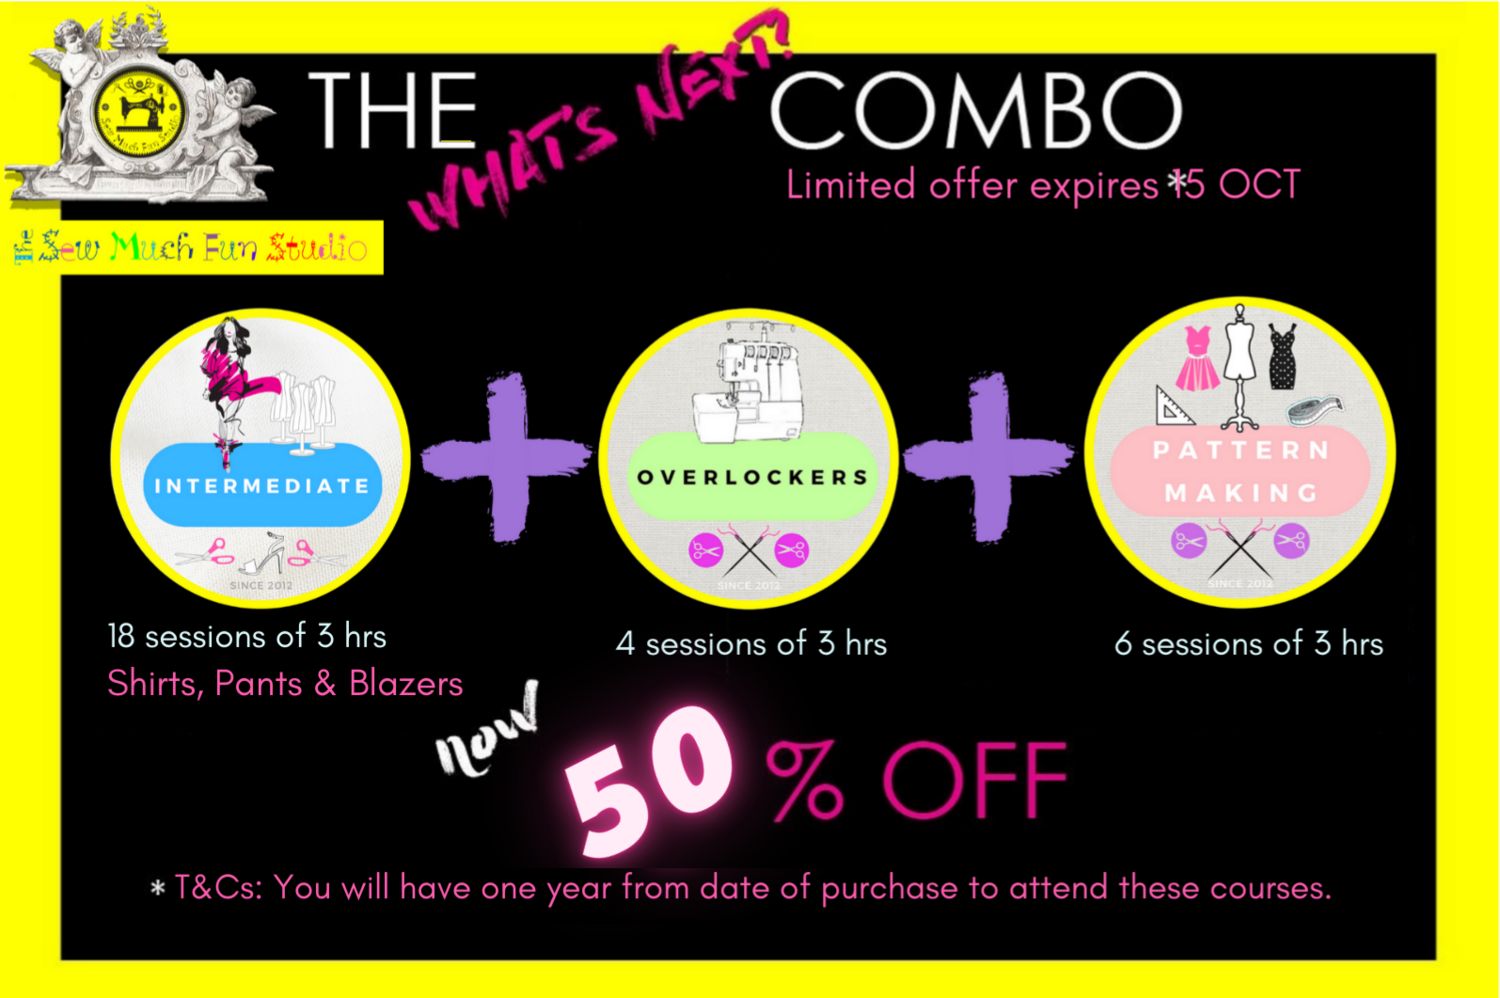 The What's Next Combo {5 Courses   Have one year access to complete your courses: T&Cs apply. Offer expires 15 OCT!